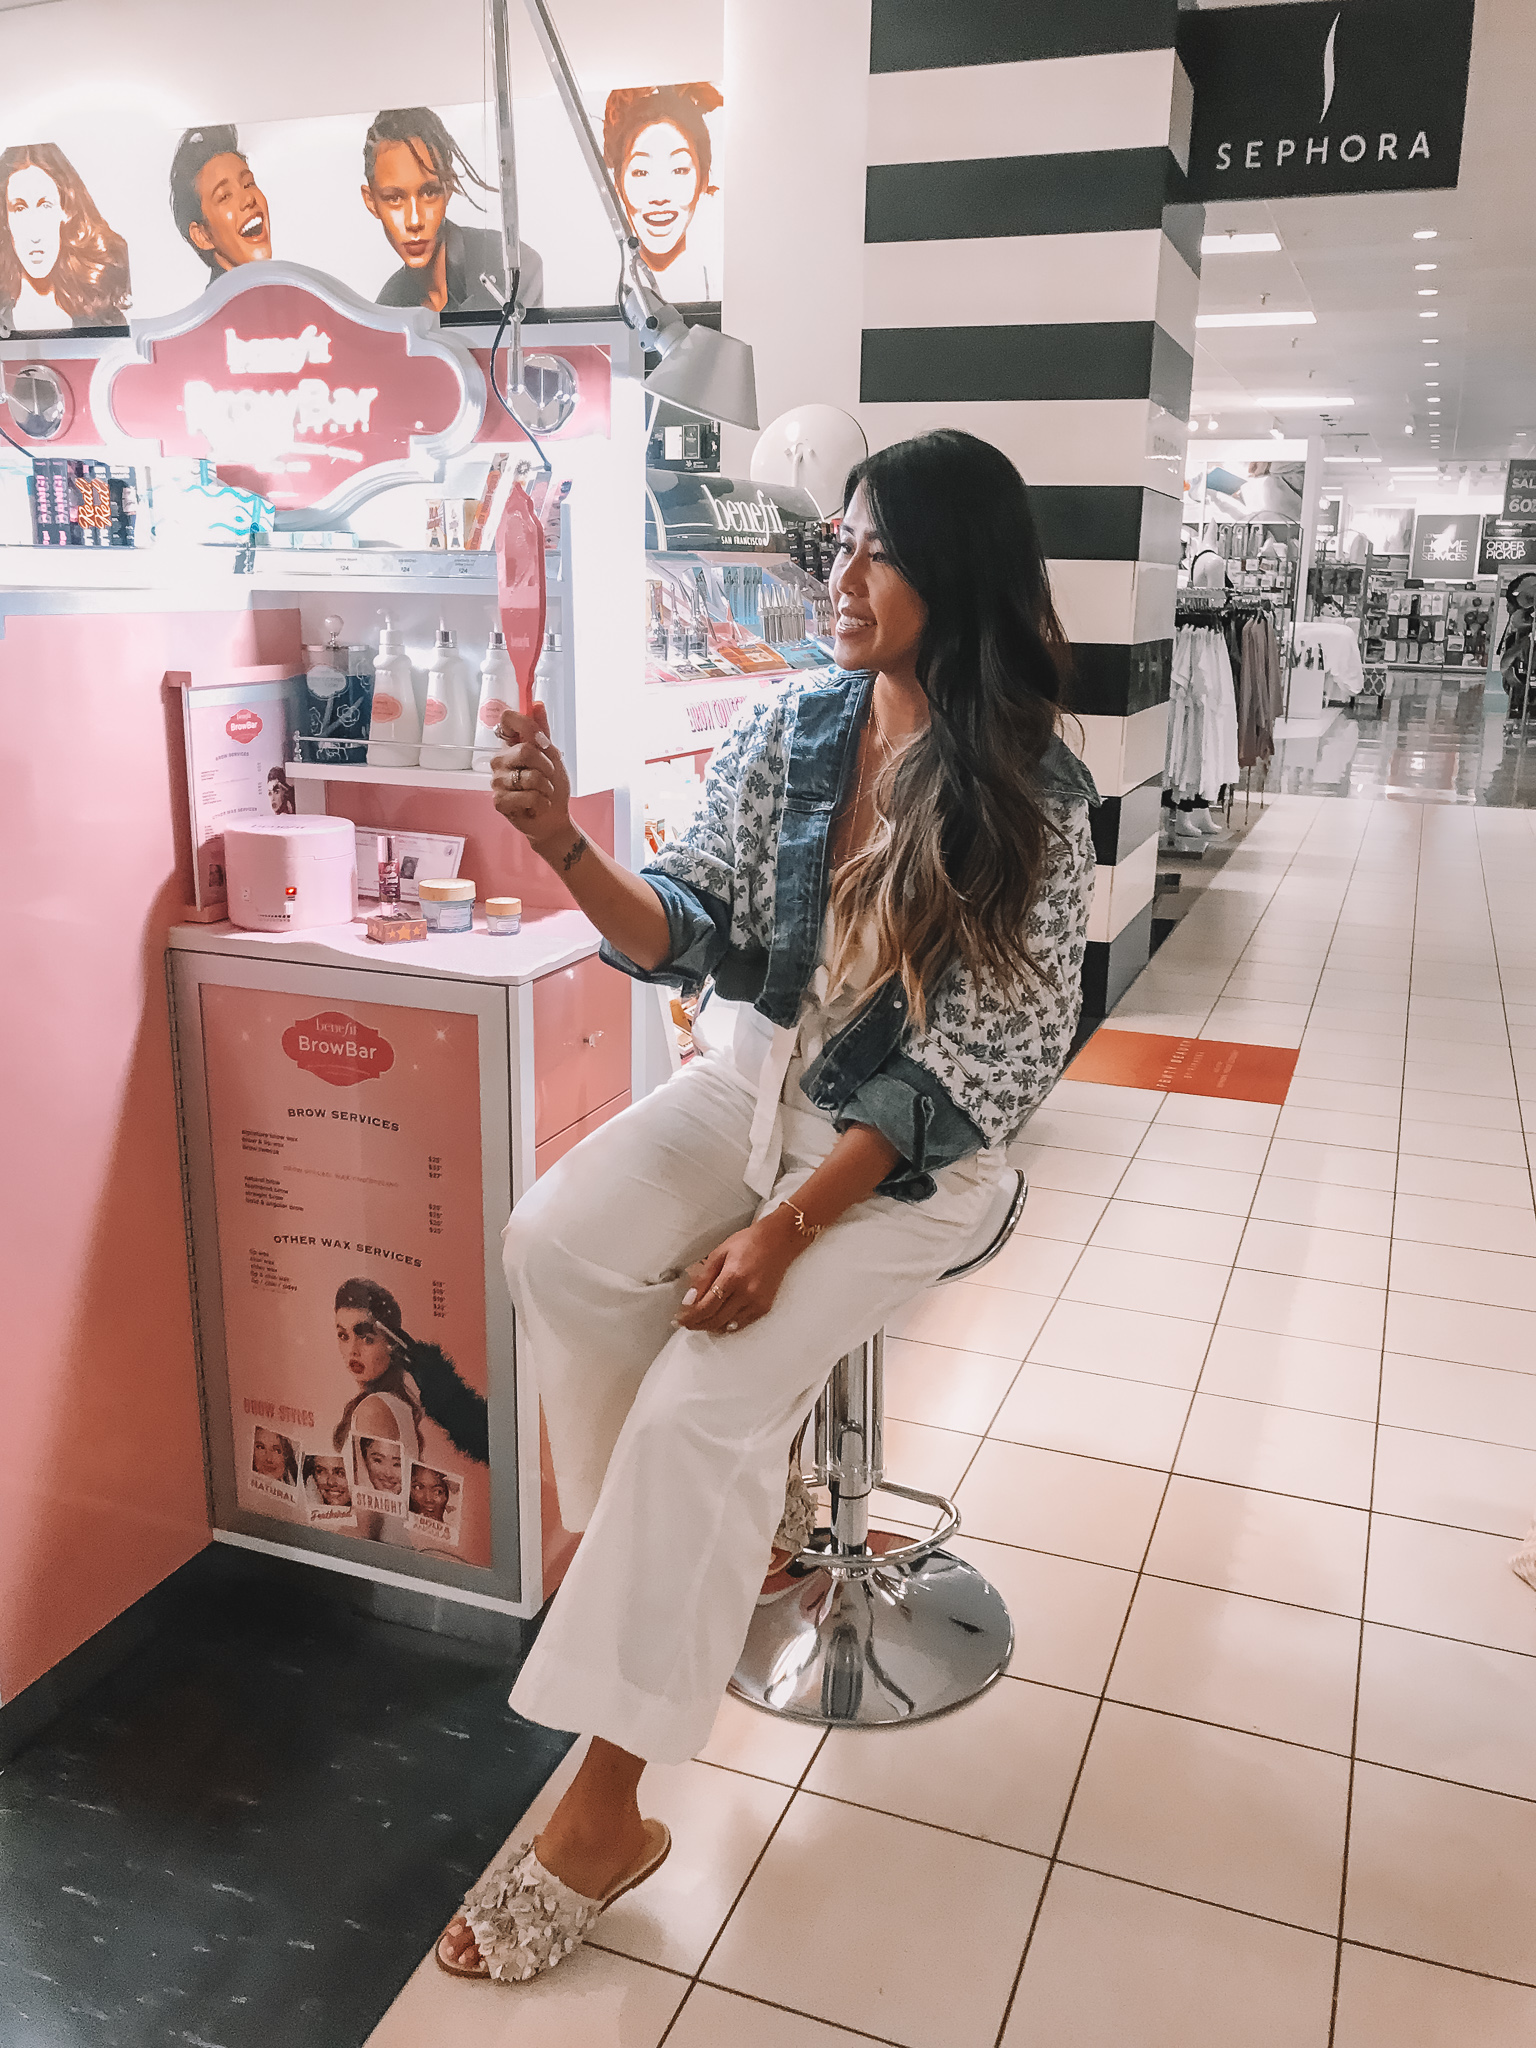 My Benefit Brow Bar Experience At Sephora Inside Jcpenney